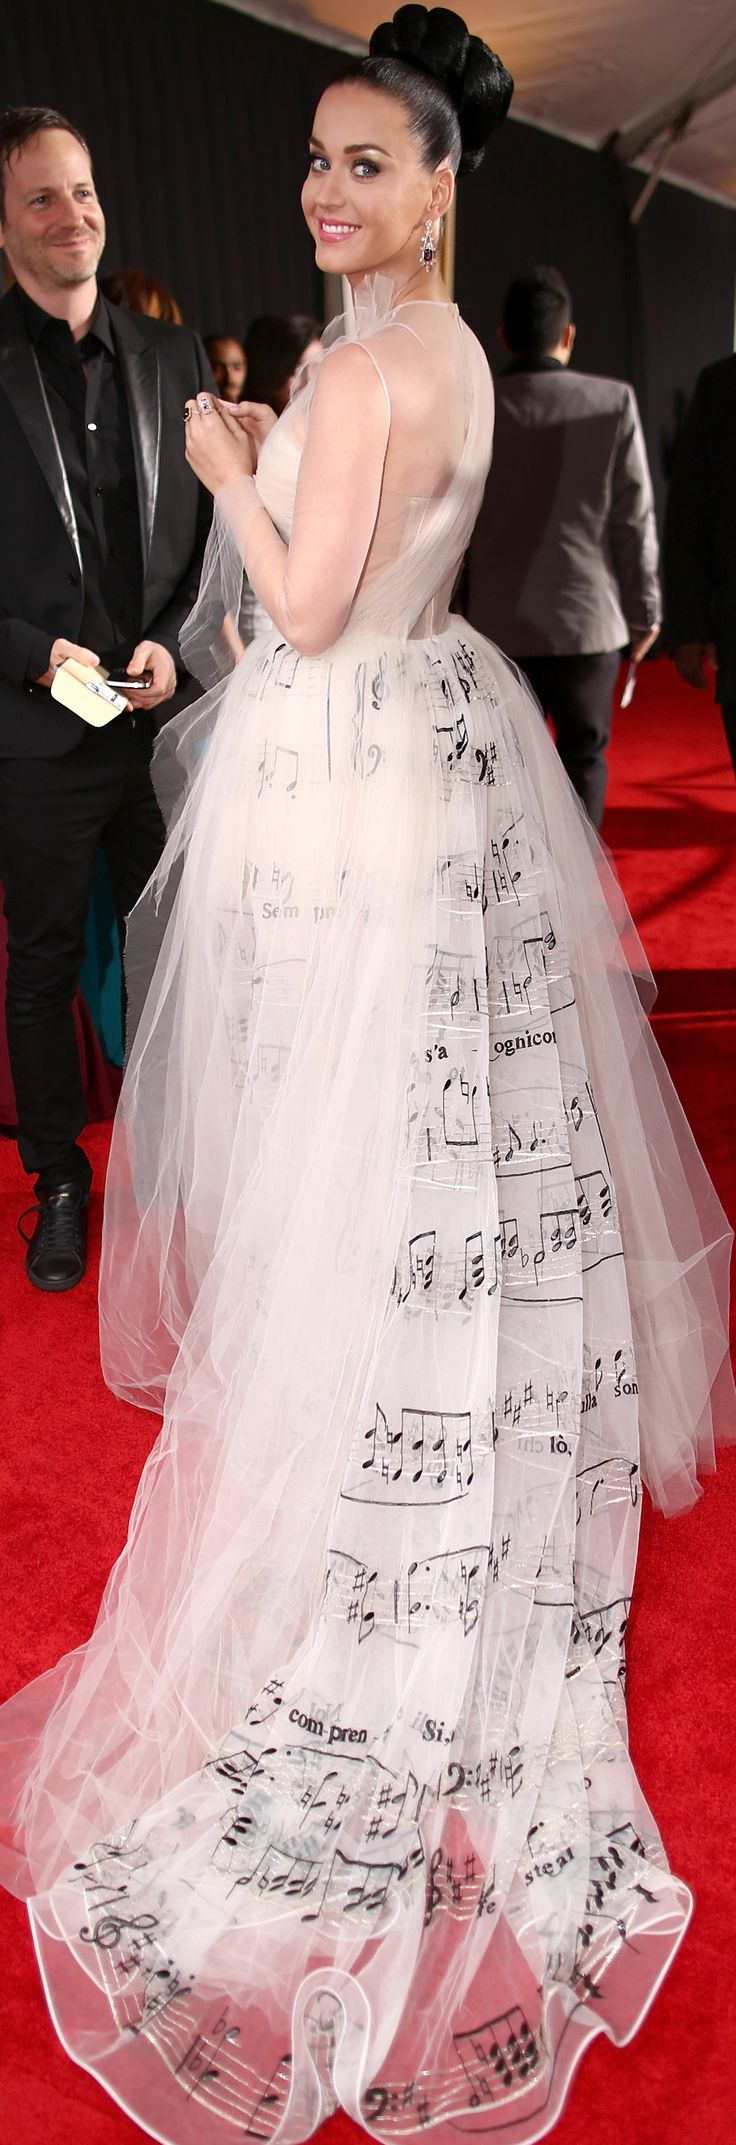 I am in love with Katy Perry's dress. Can I wear this for my wedding please?!